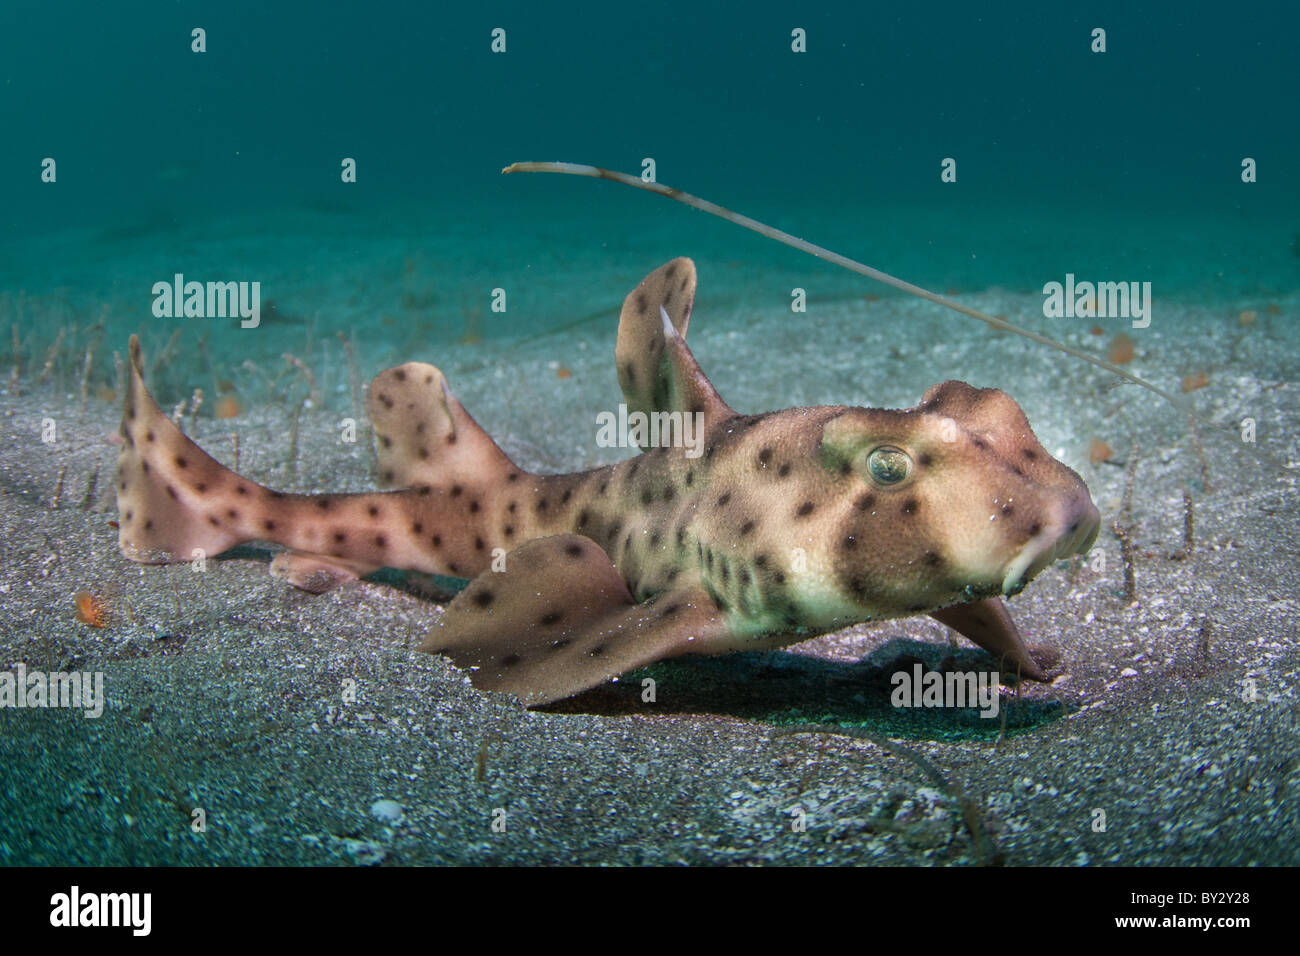 Horn Shark Juvenile in Sand - Stock Image